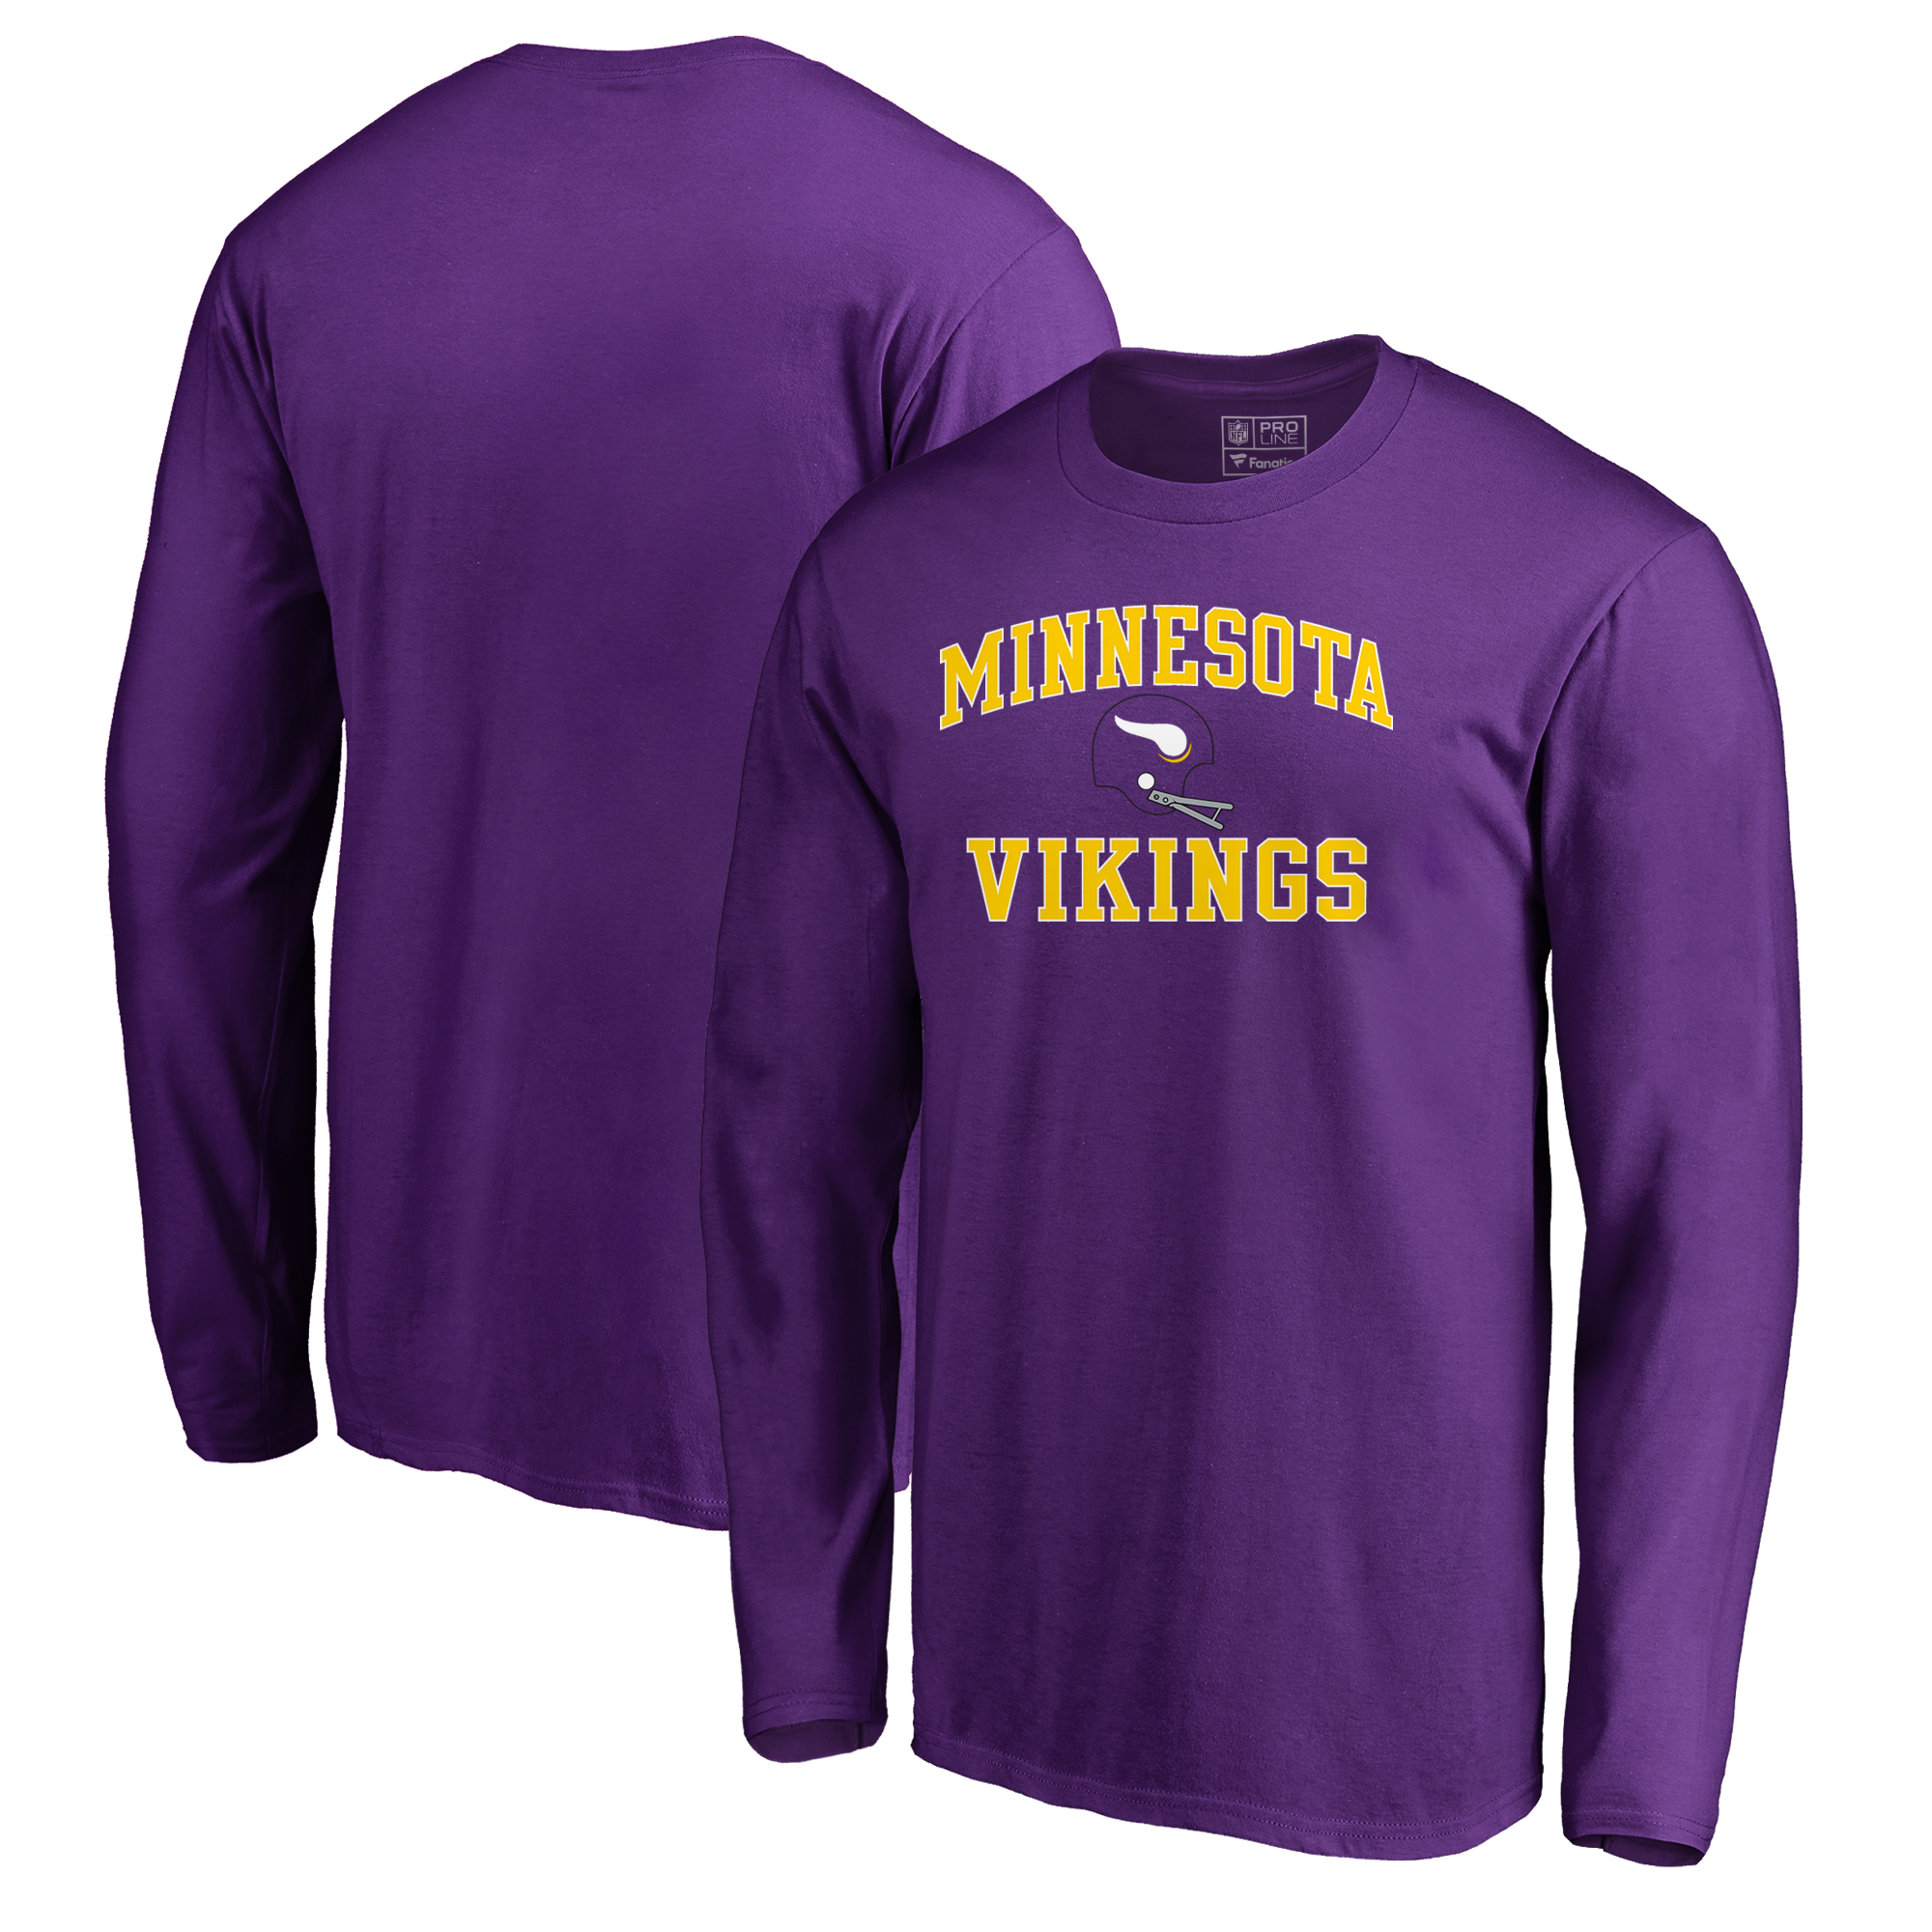 Minnesota Vikings NFL Pro Line by Fanatics Branded Vintage Collection Victory Arch Long Sleeve T-Shirt - Purple